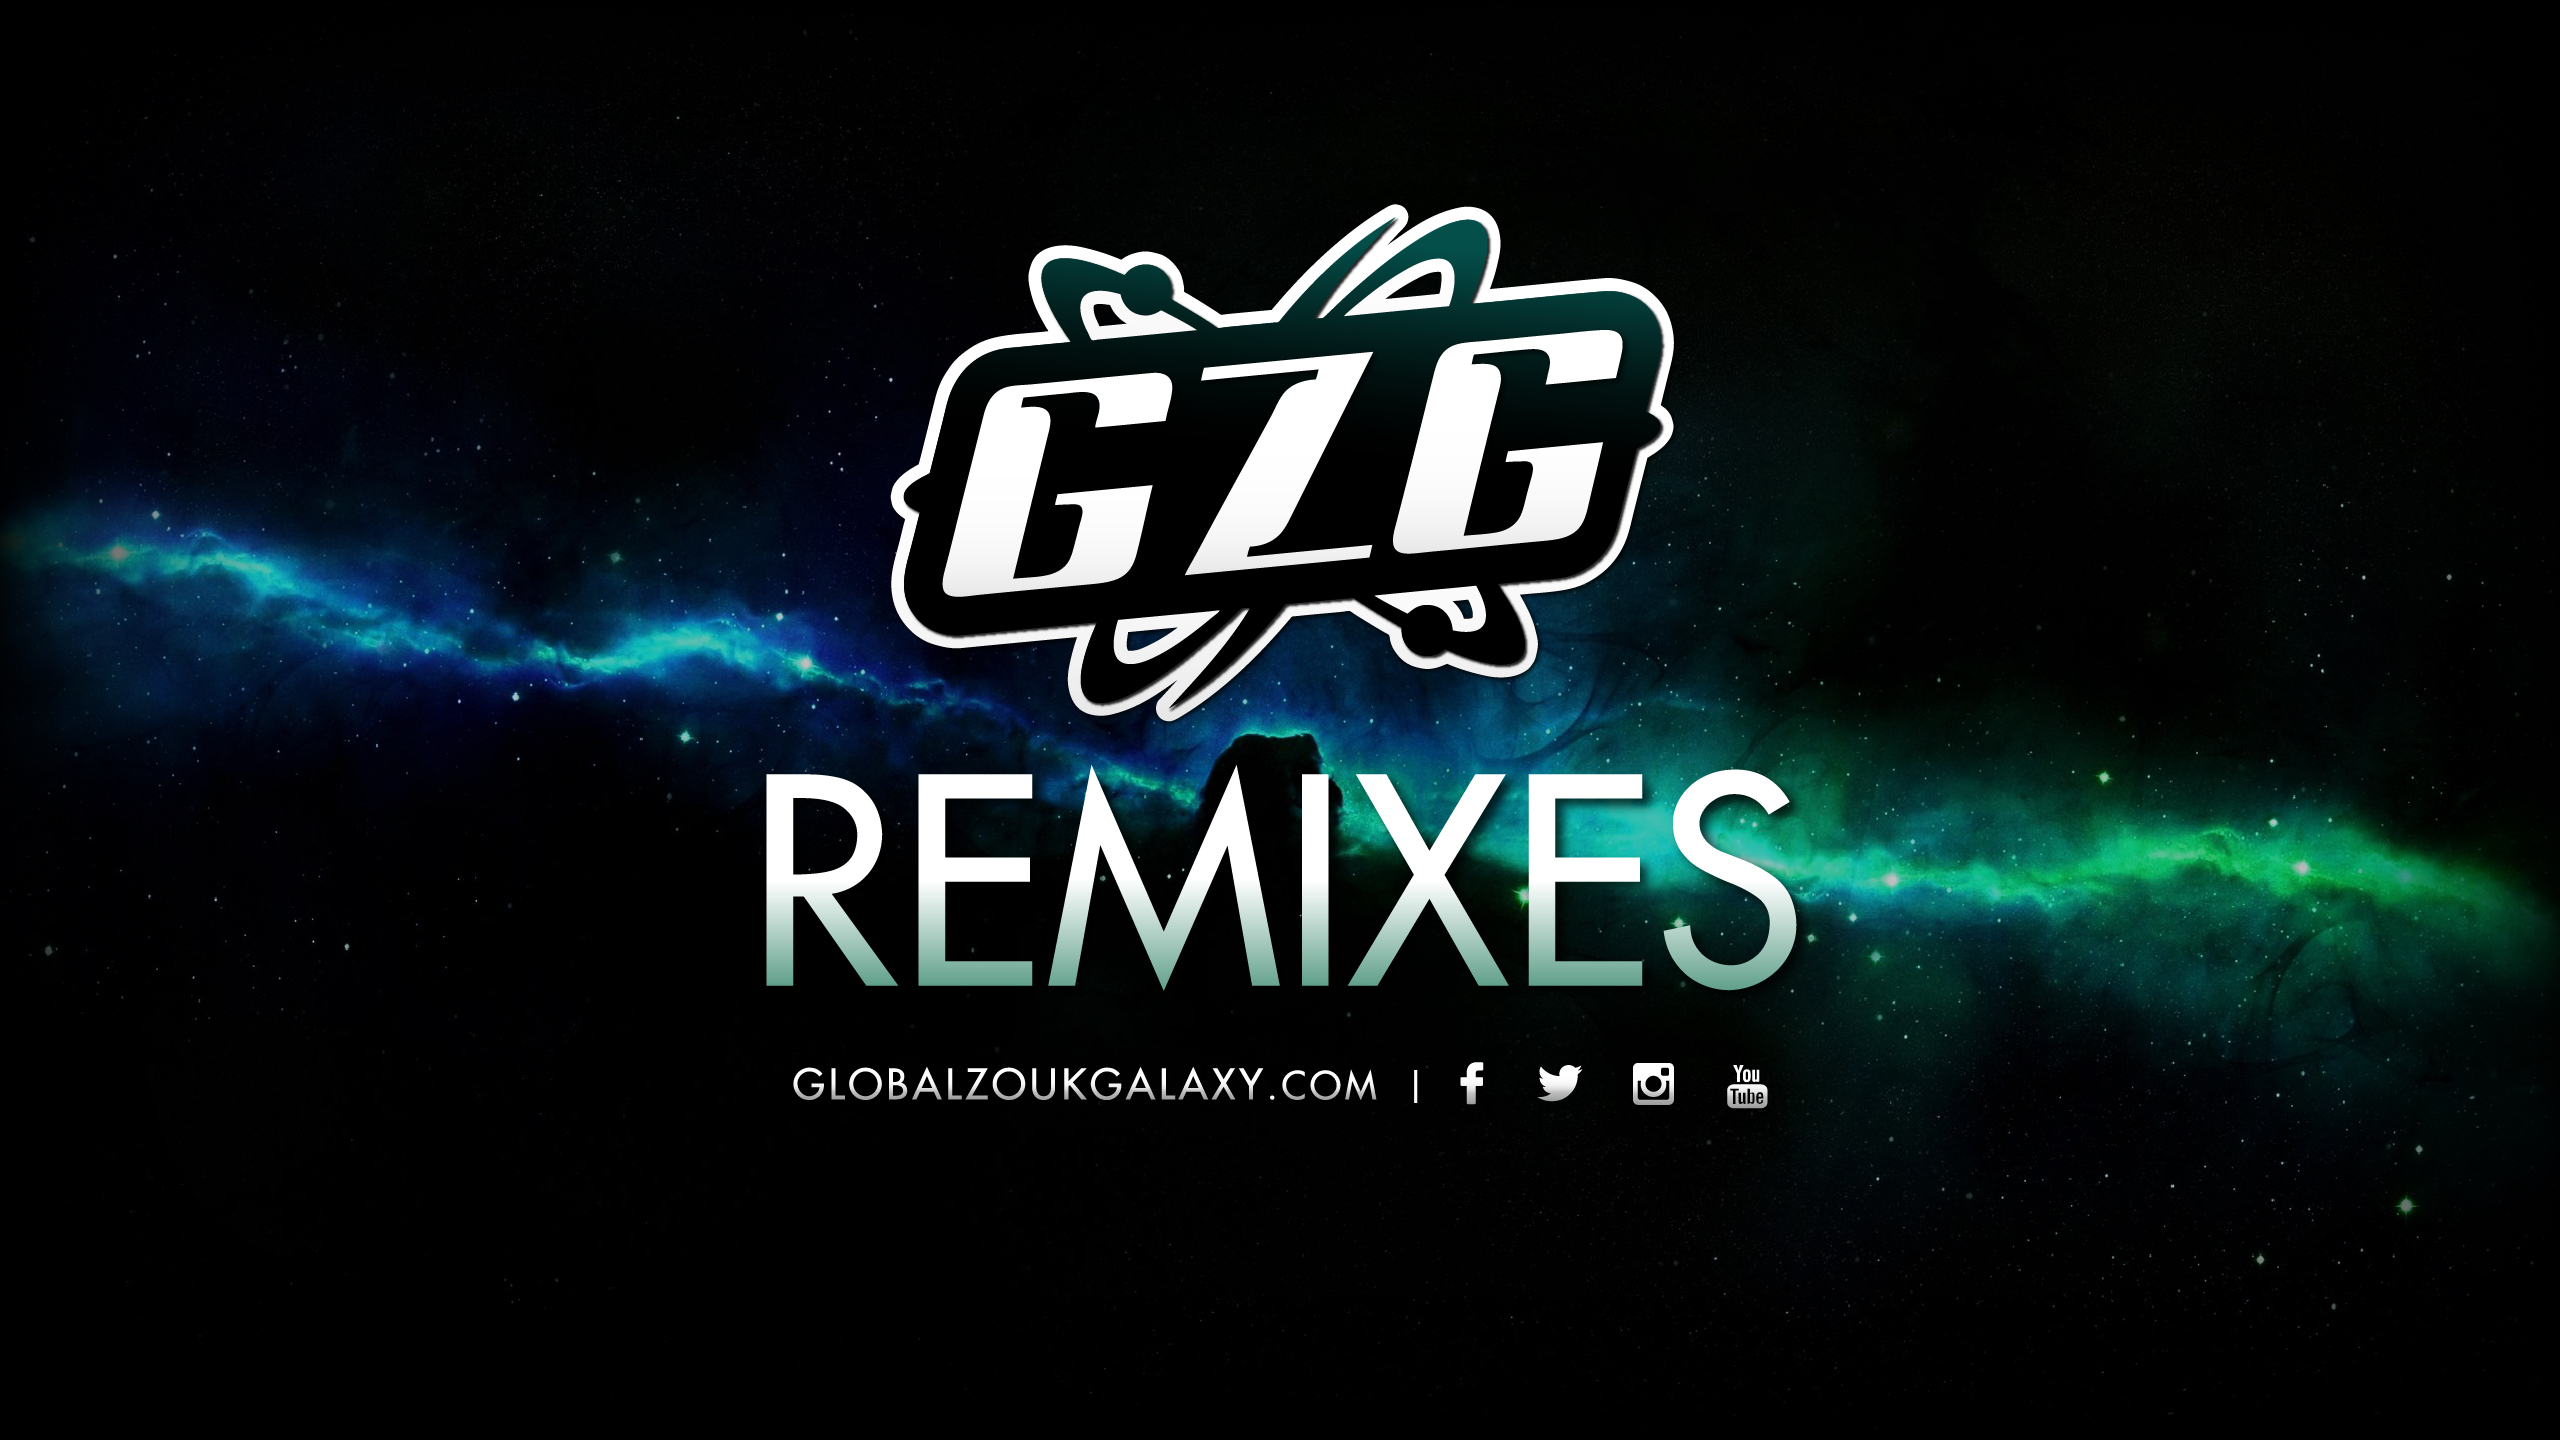 GLOBALZOUKGALAXY® PLAYLIST REMIXES